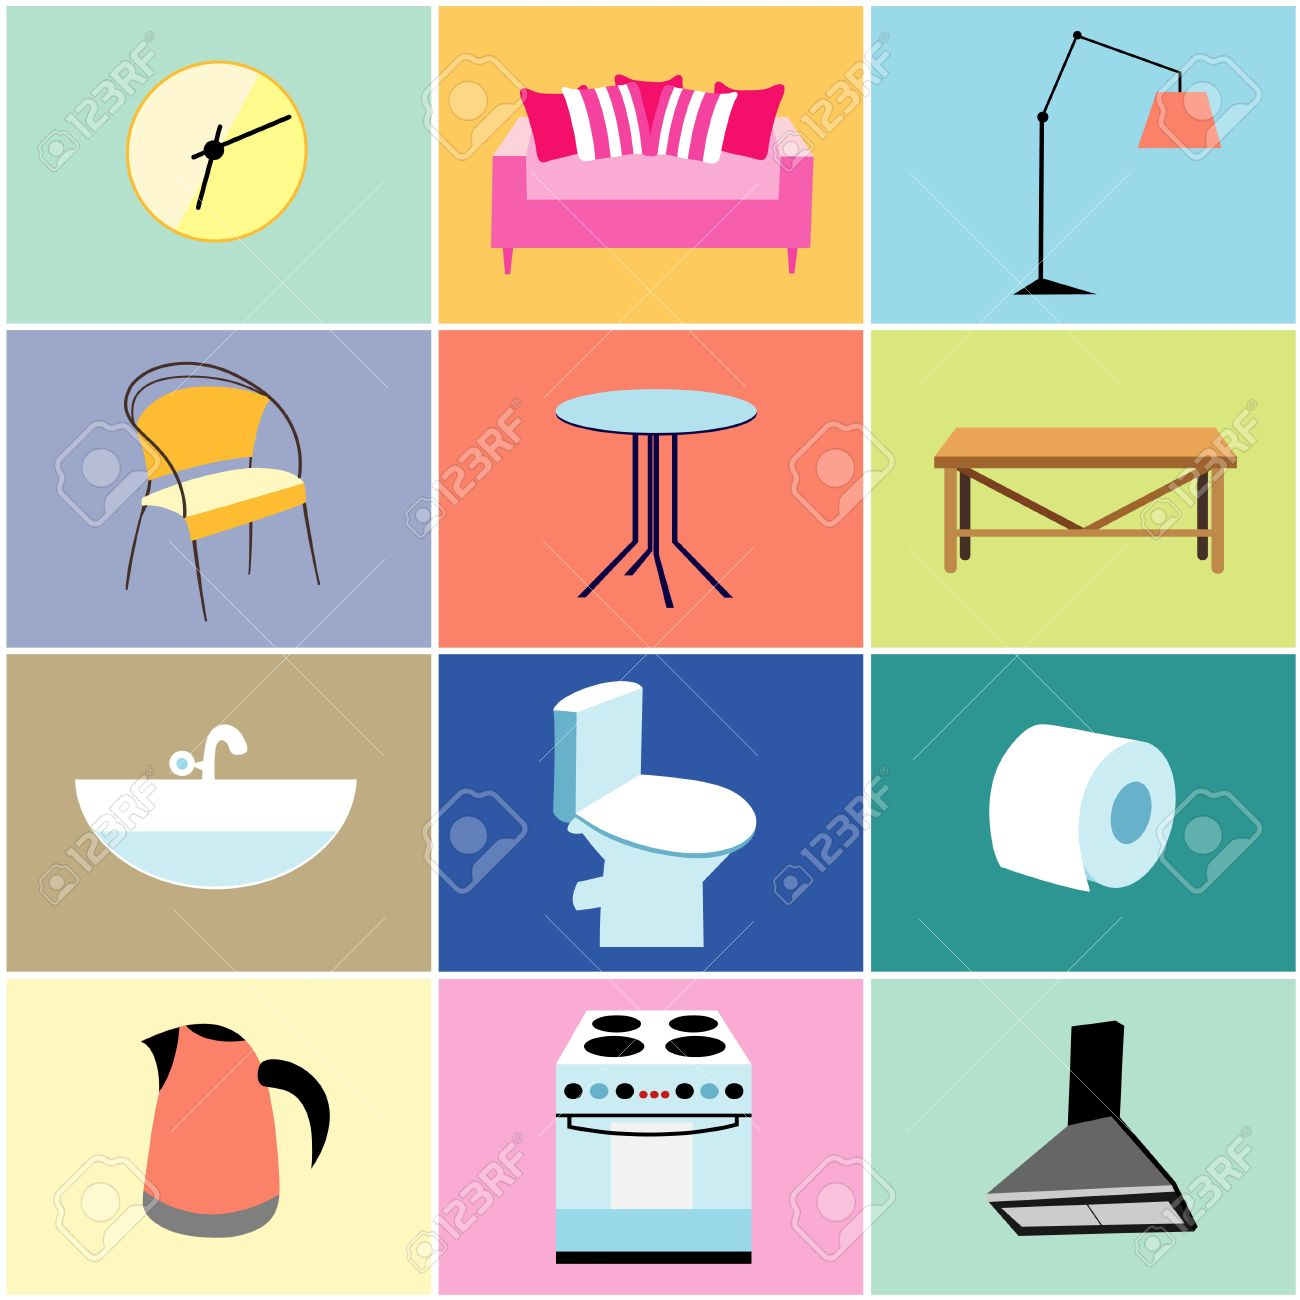 Set Of Objects And Furniture For The House On Colored Backgrounds Stock  Vector   19581367